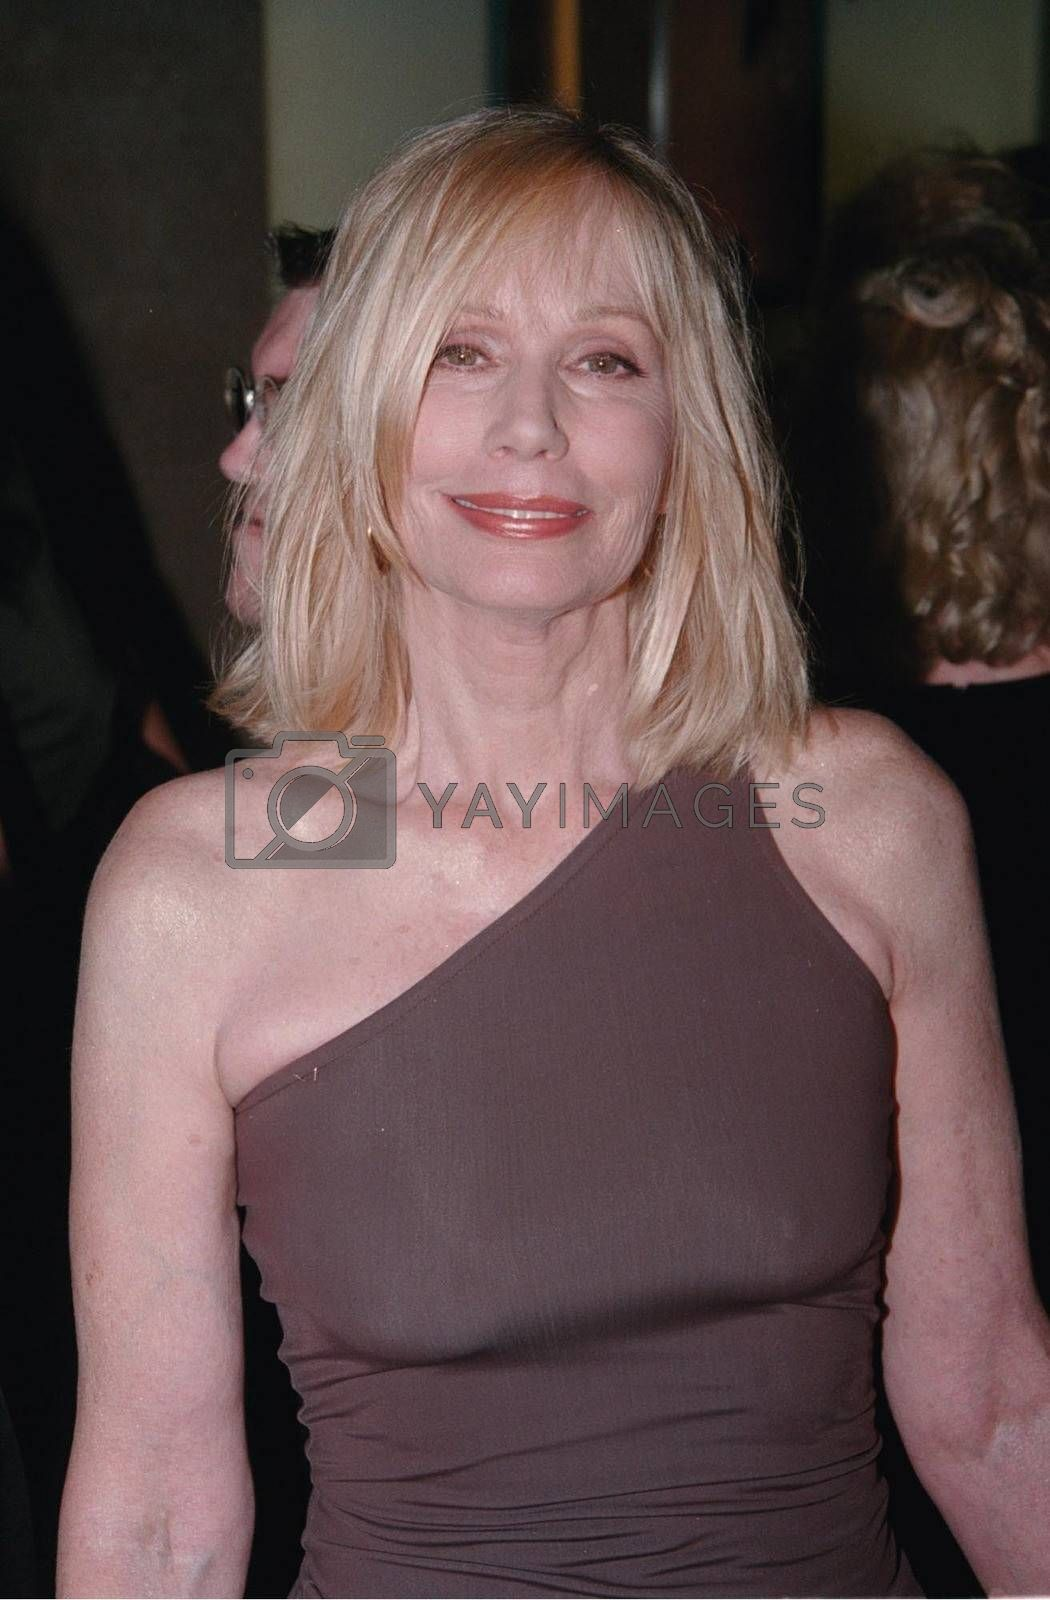 Sally Kellerman at the Hollywood Film Awards in Beverly Hills. 08-08-00